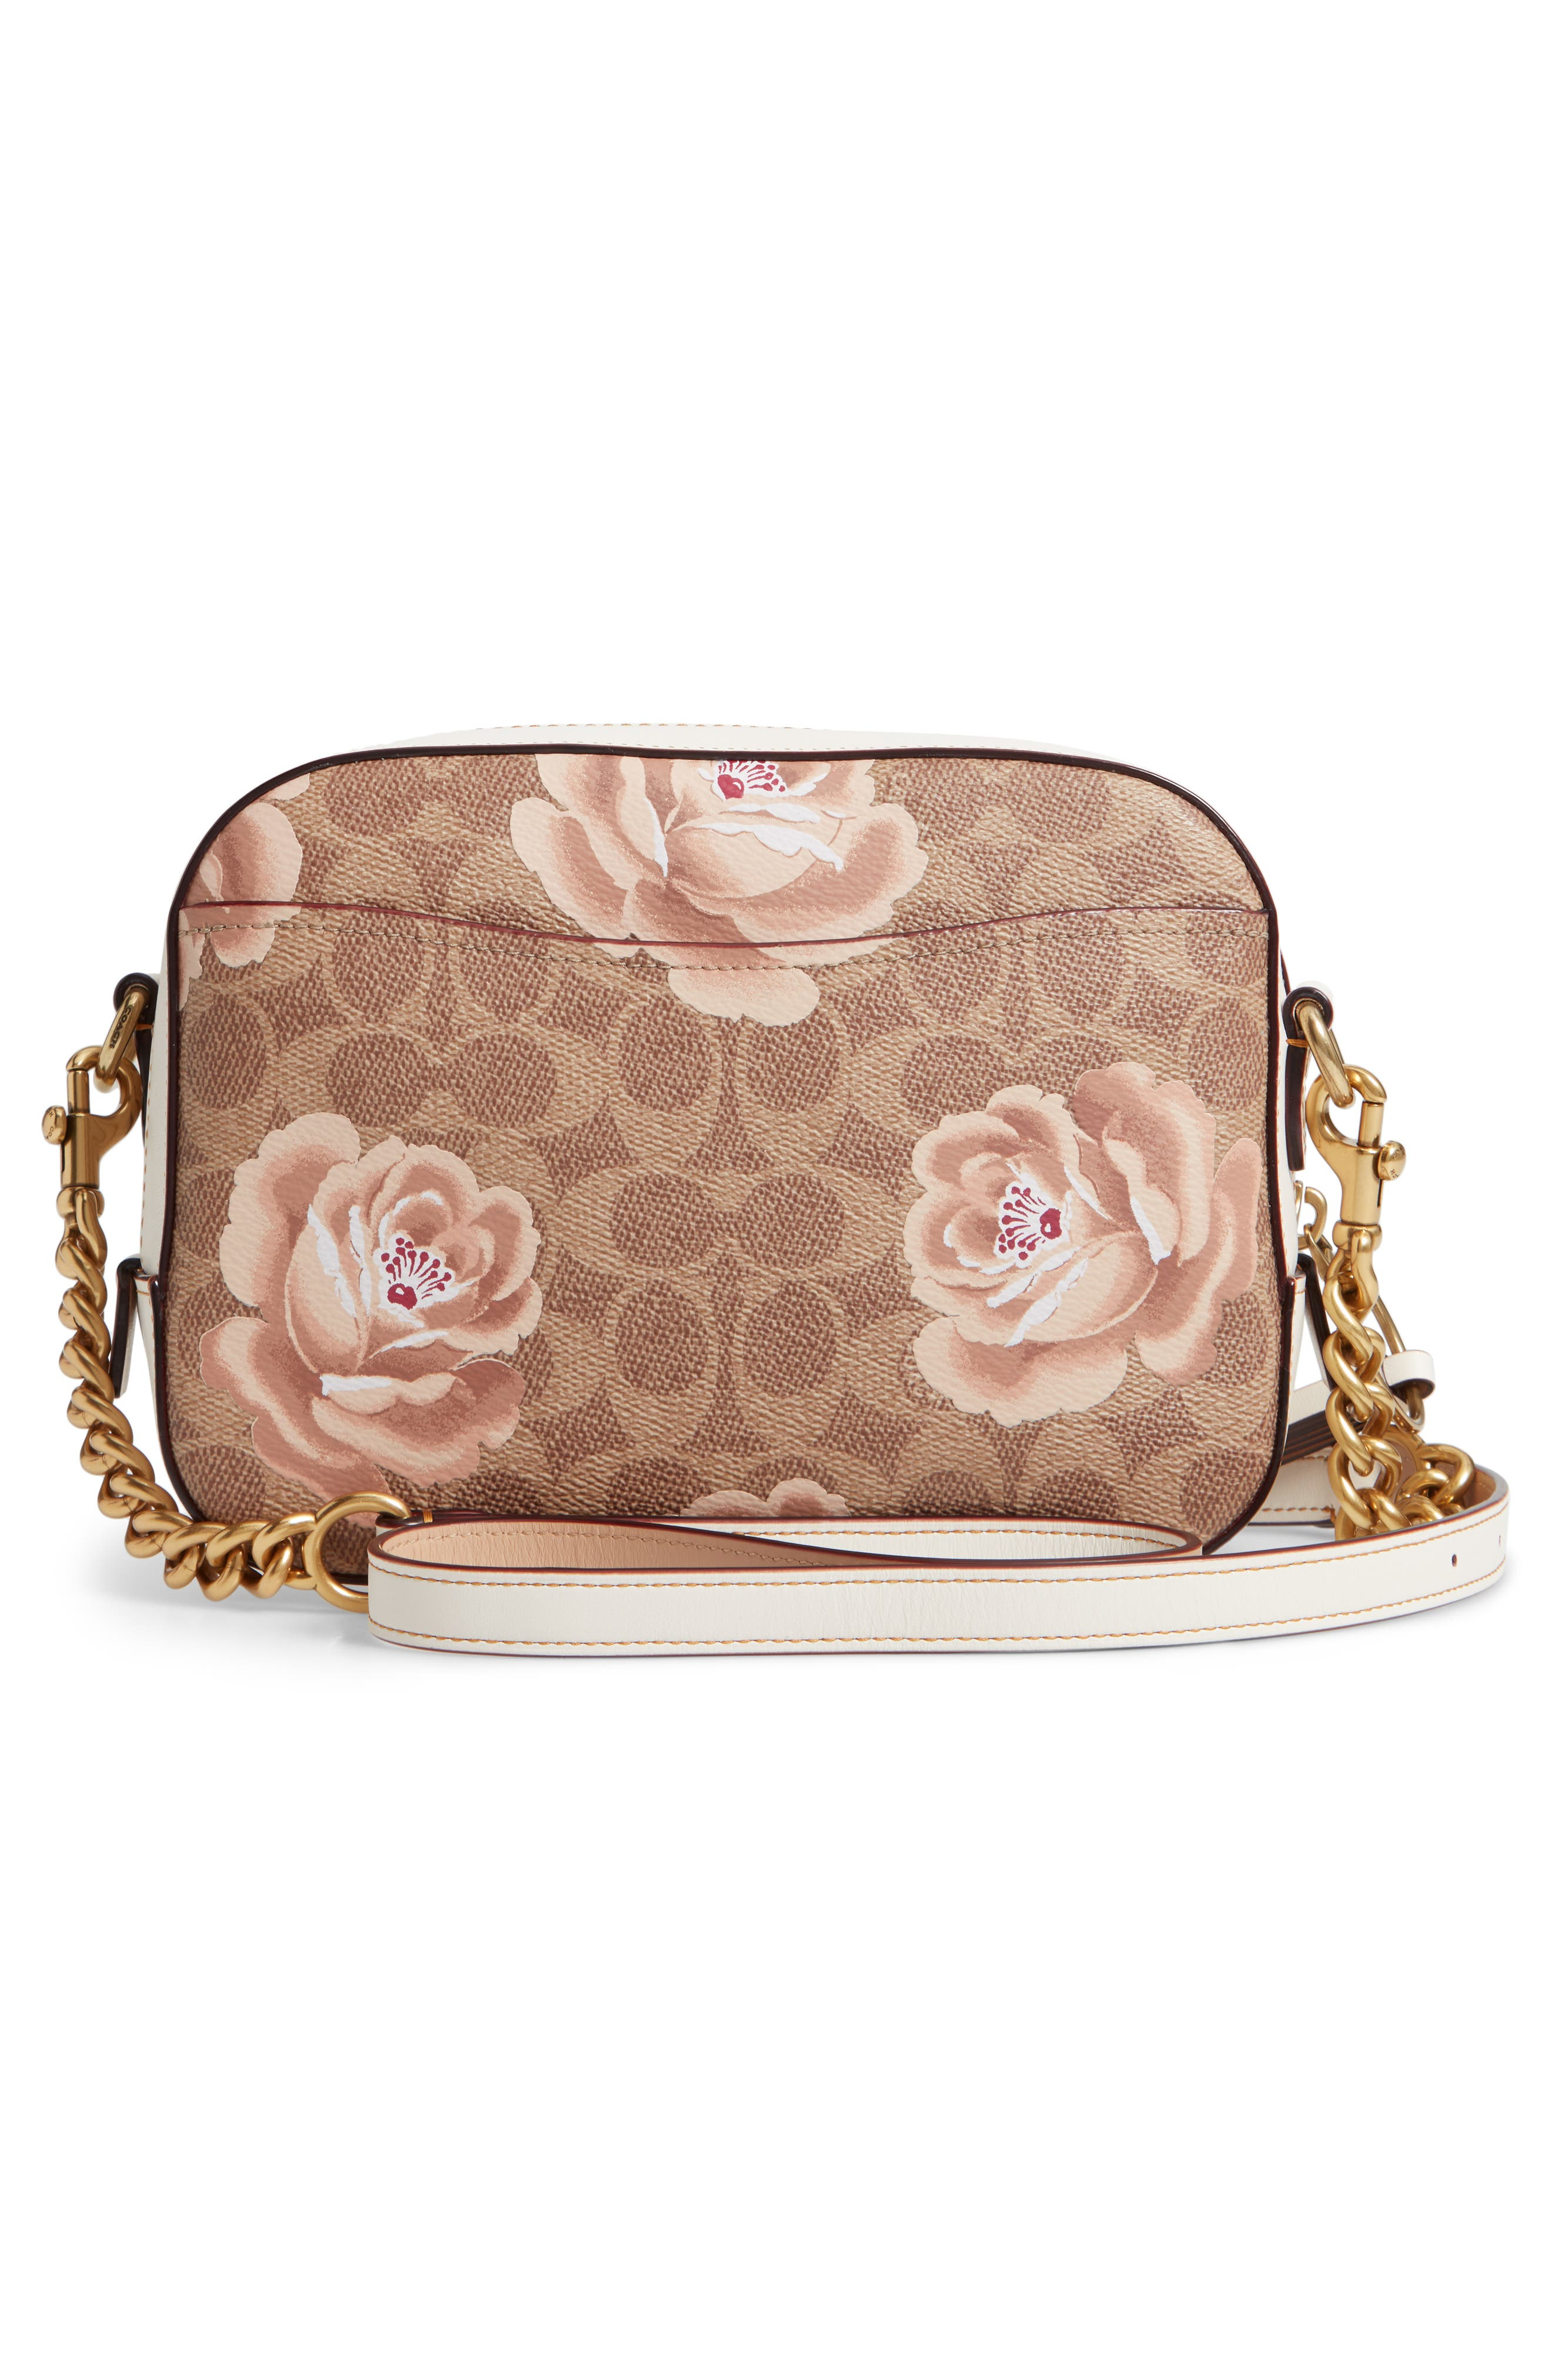 Signature Rose Coated Canvas Camera Bag,                             Alternate thumbnail 3, color,                             250